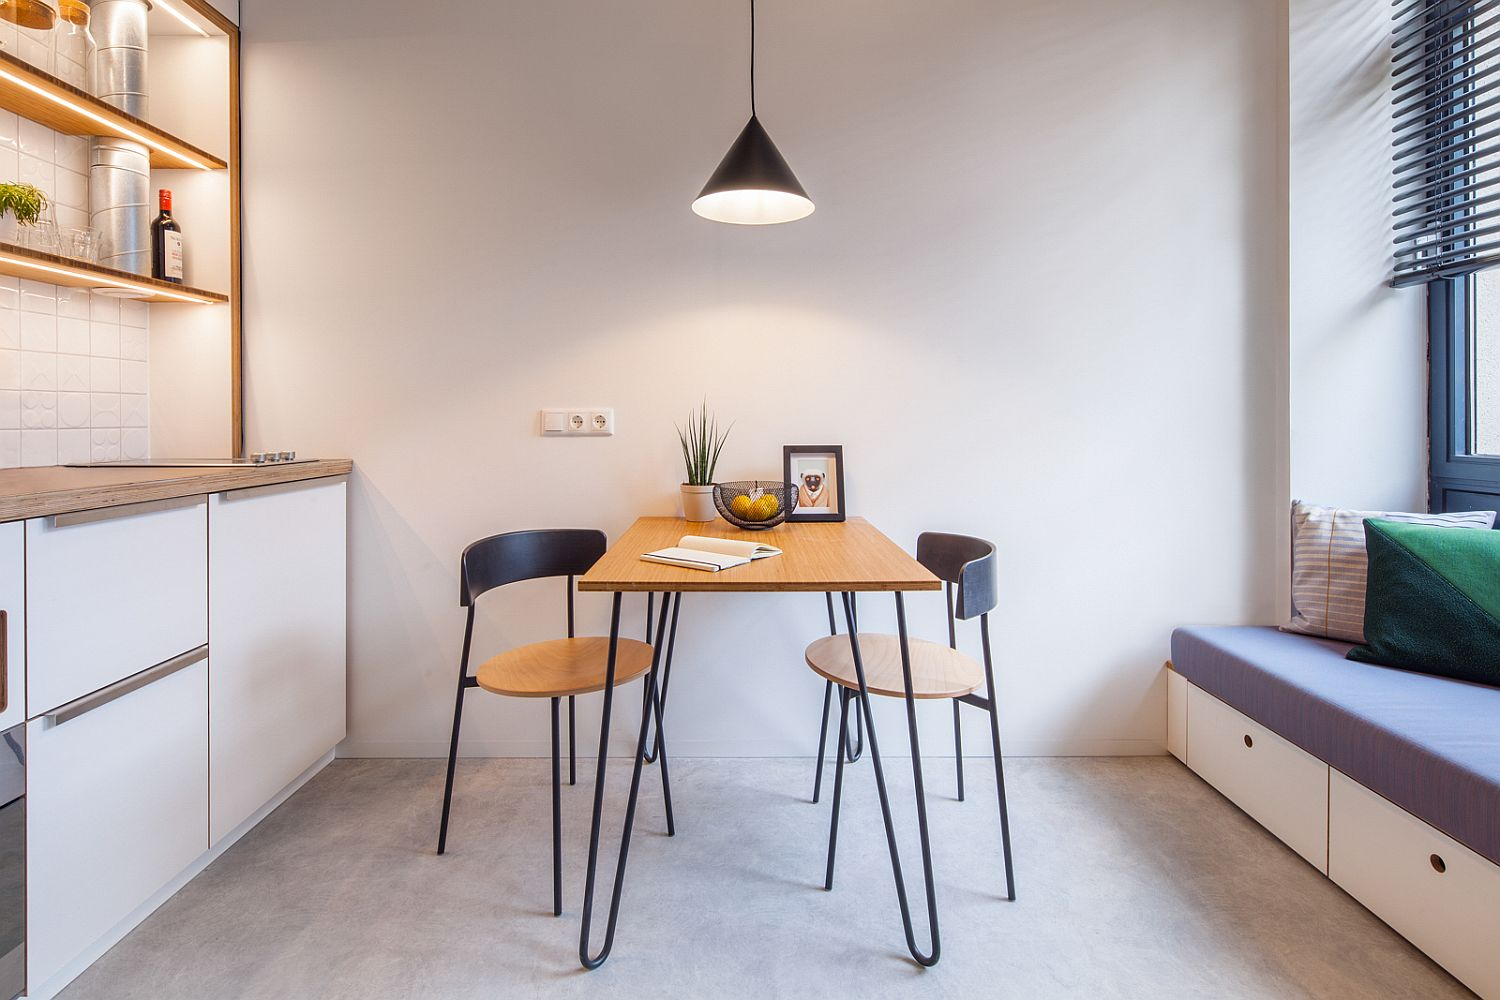 Tiny dining area between the small living area nook and the kitchen